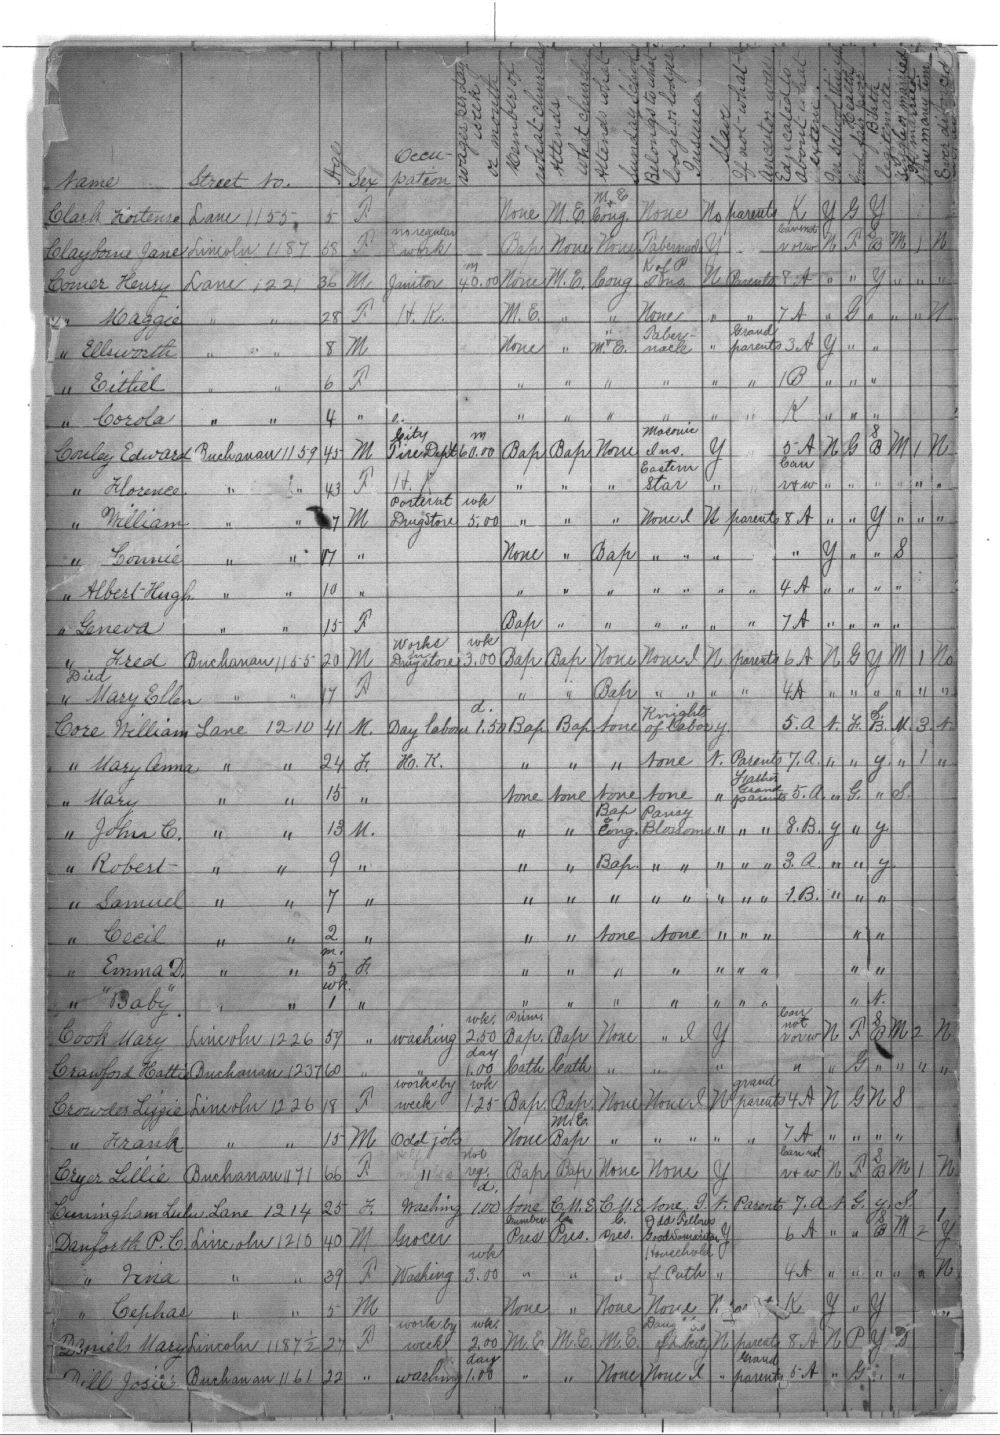 Tennessee Town census - 2